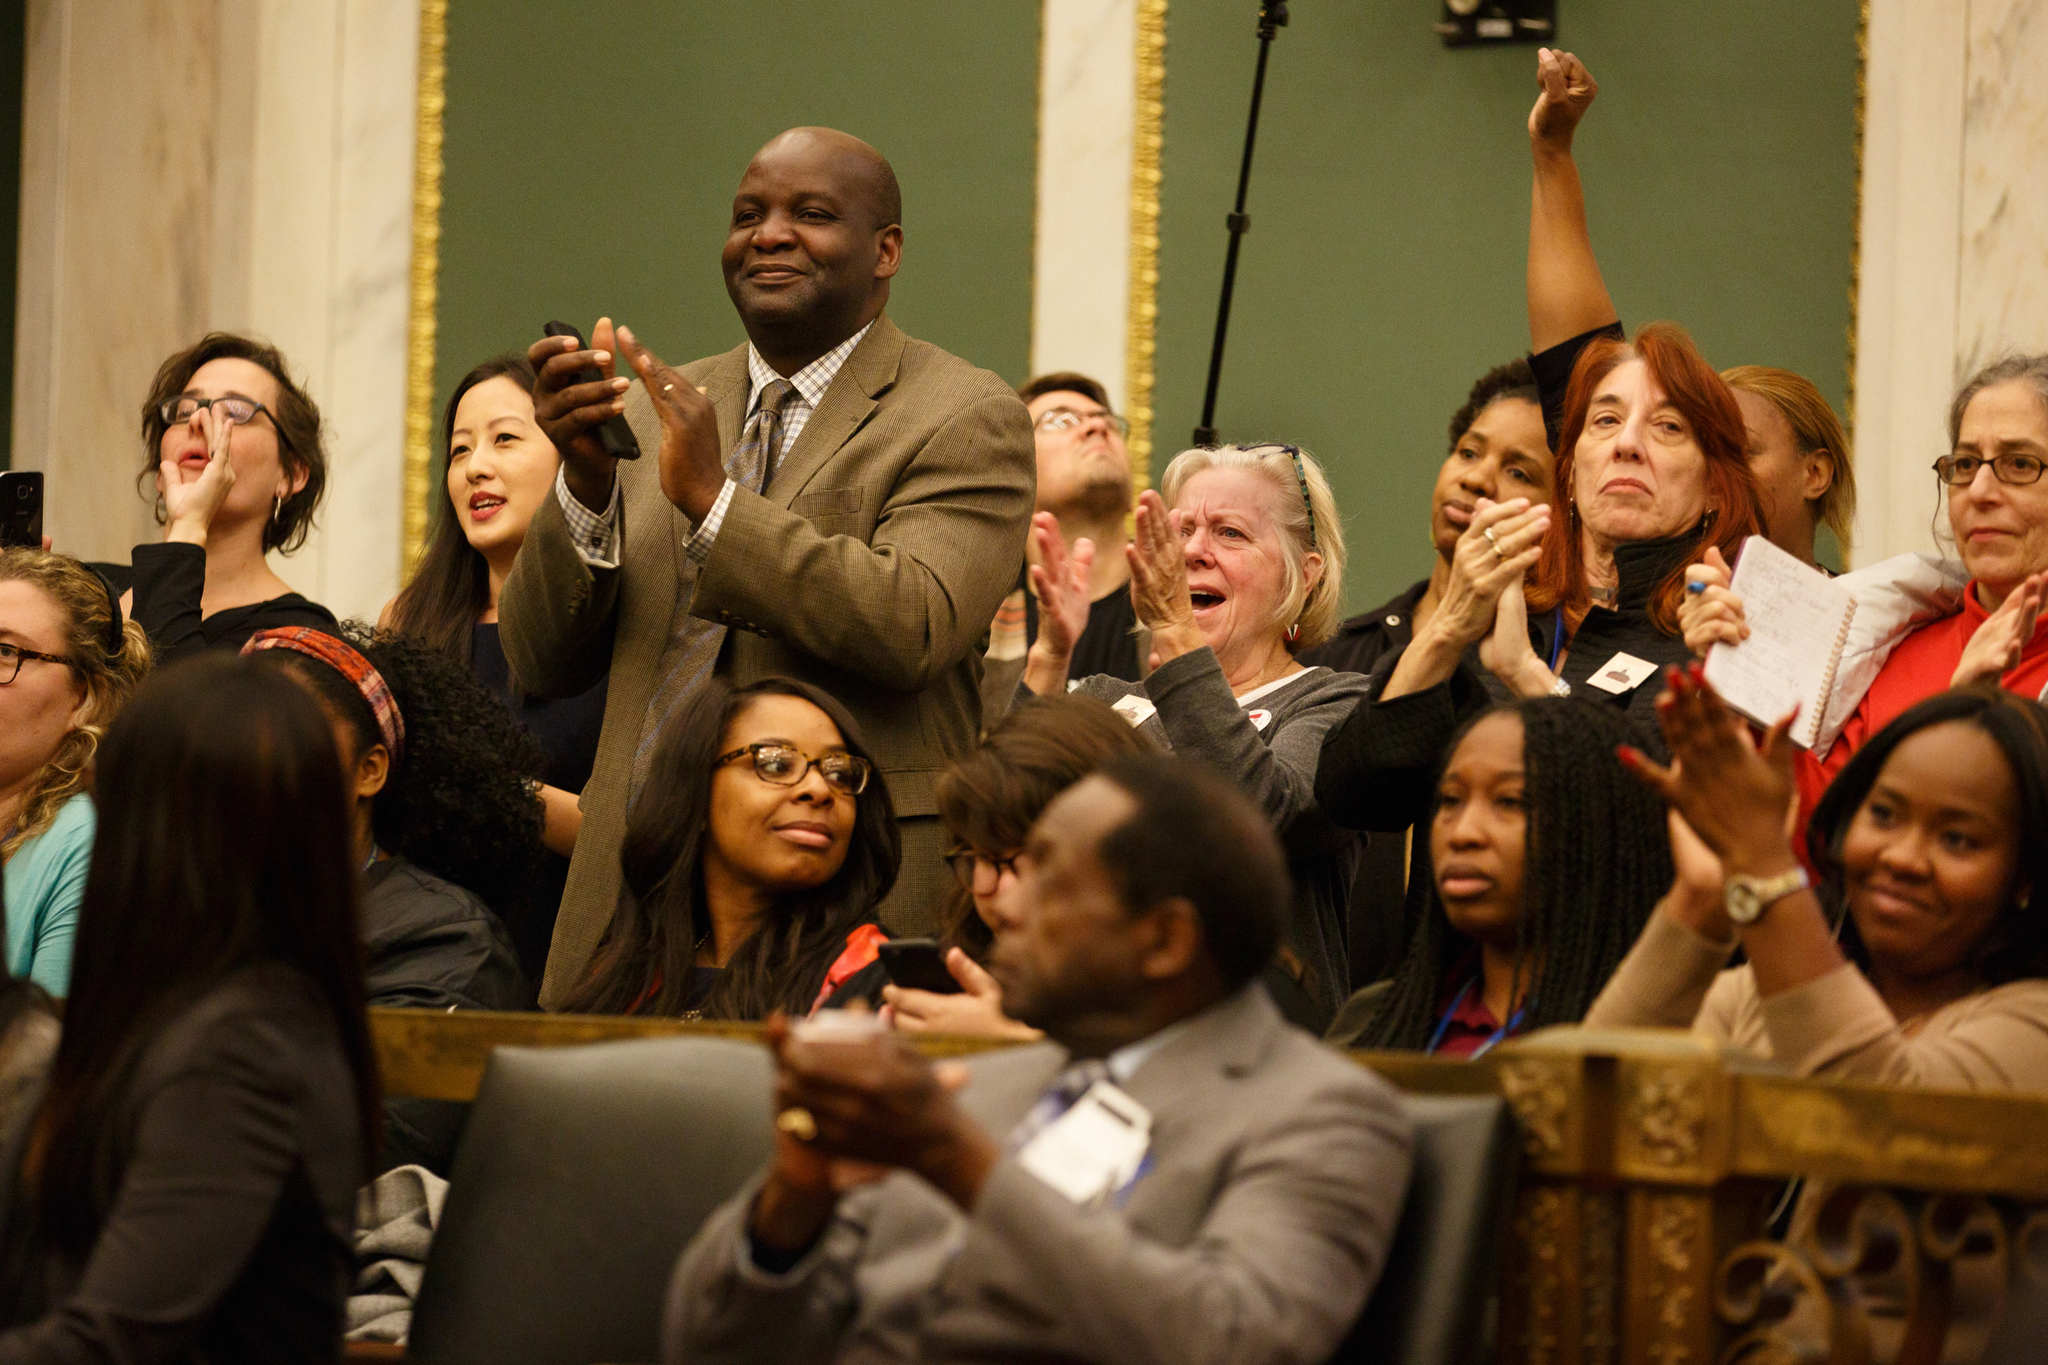 The crowd applauds after Mayor James Kenney announces that the 16-year SRC experiment is ending in City Council Chambers, in Philadelphia, Thursday, Nov. 2, 2017.